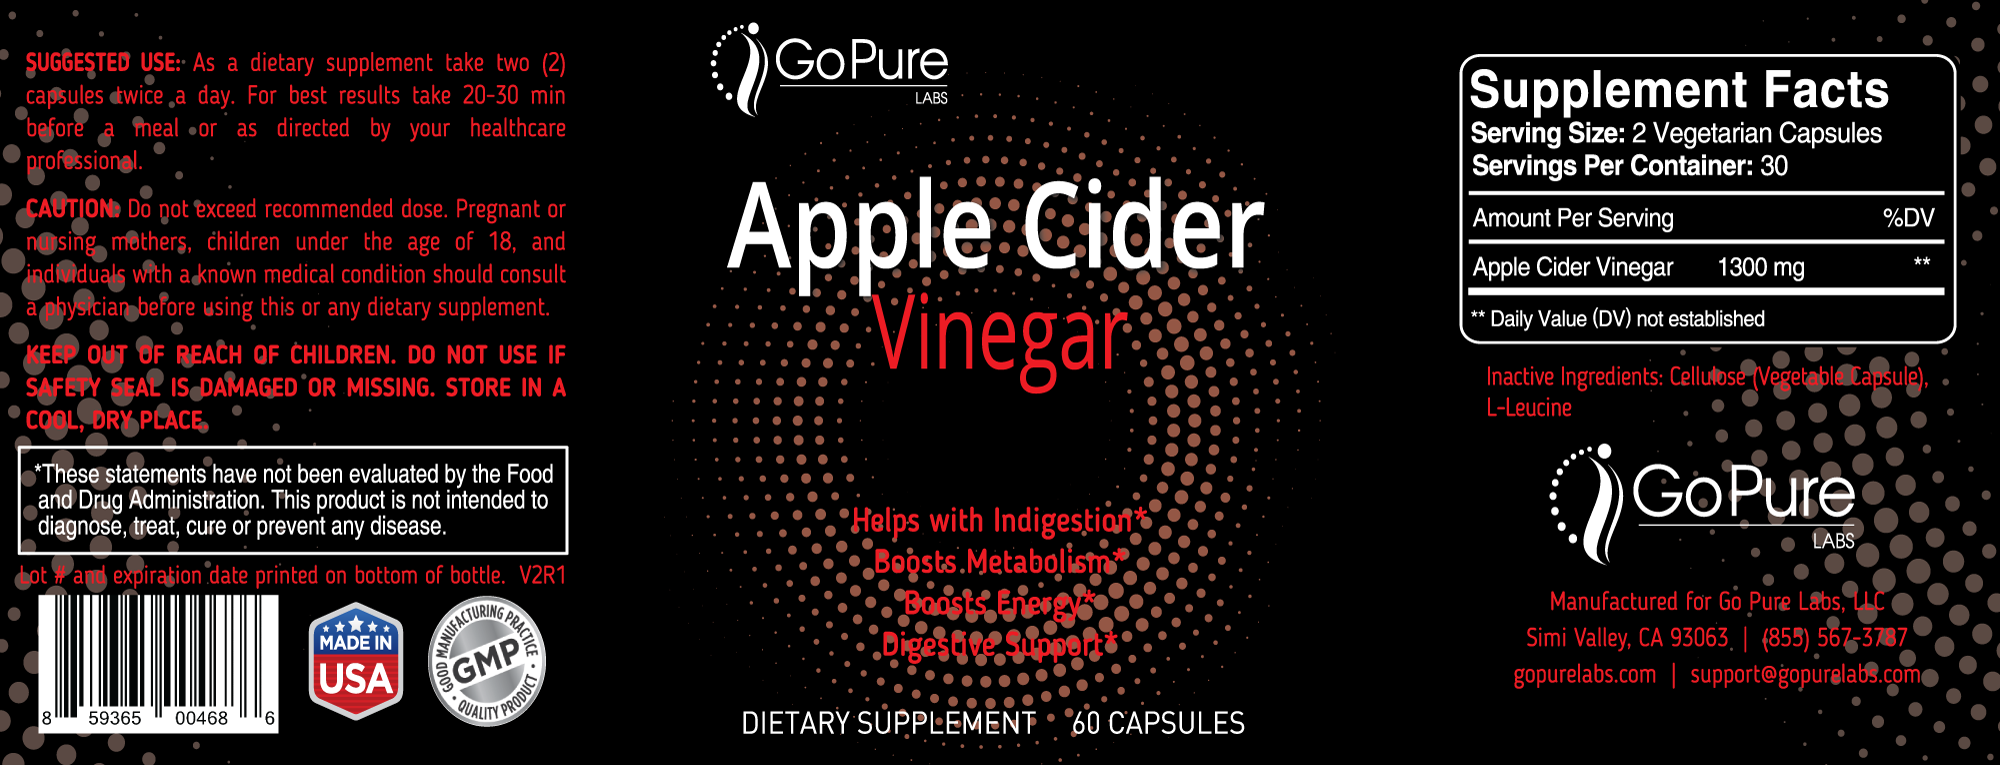 GoPure Apple Cider Vinegar Label